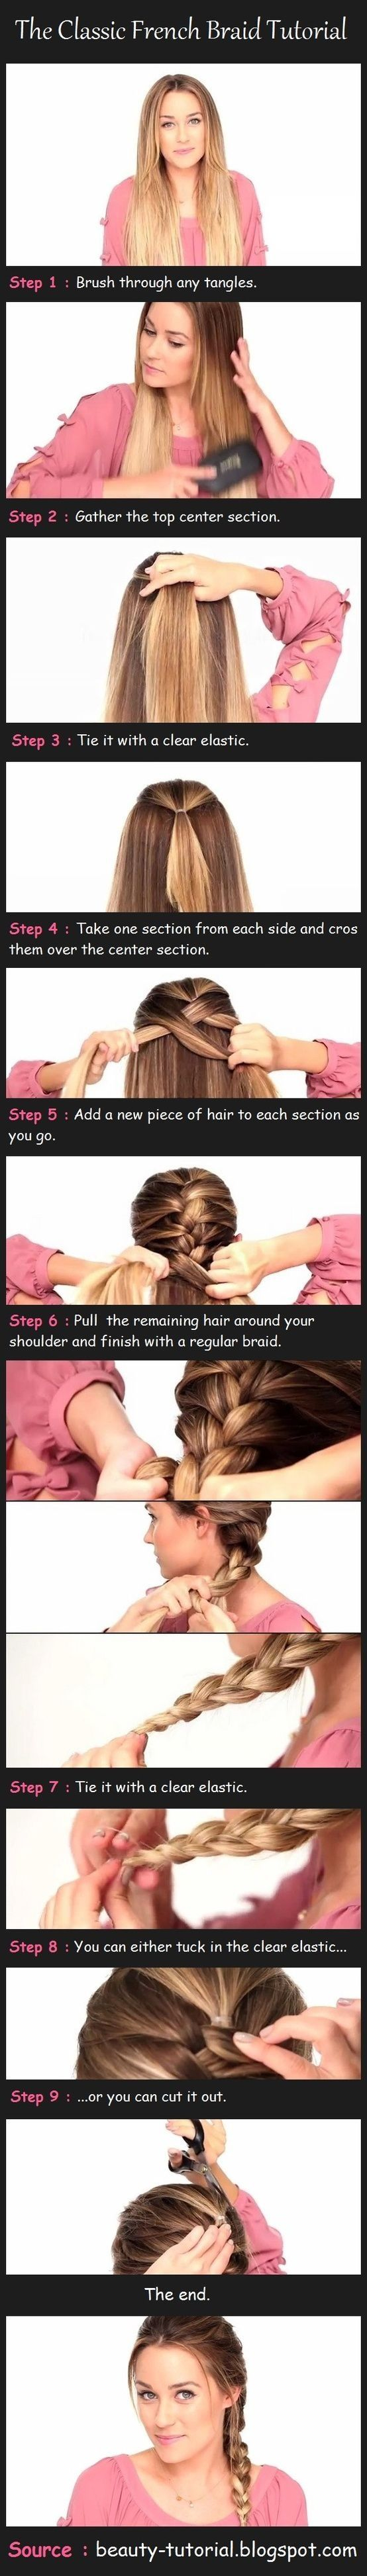 How to French braid. I seriously need this!